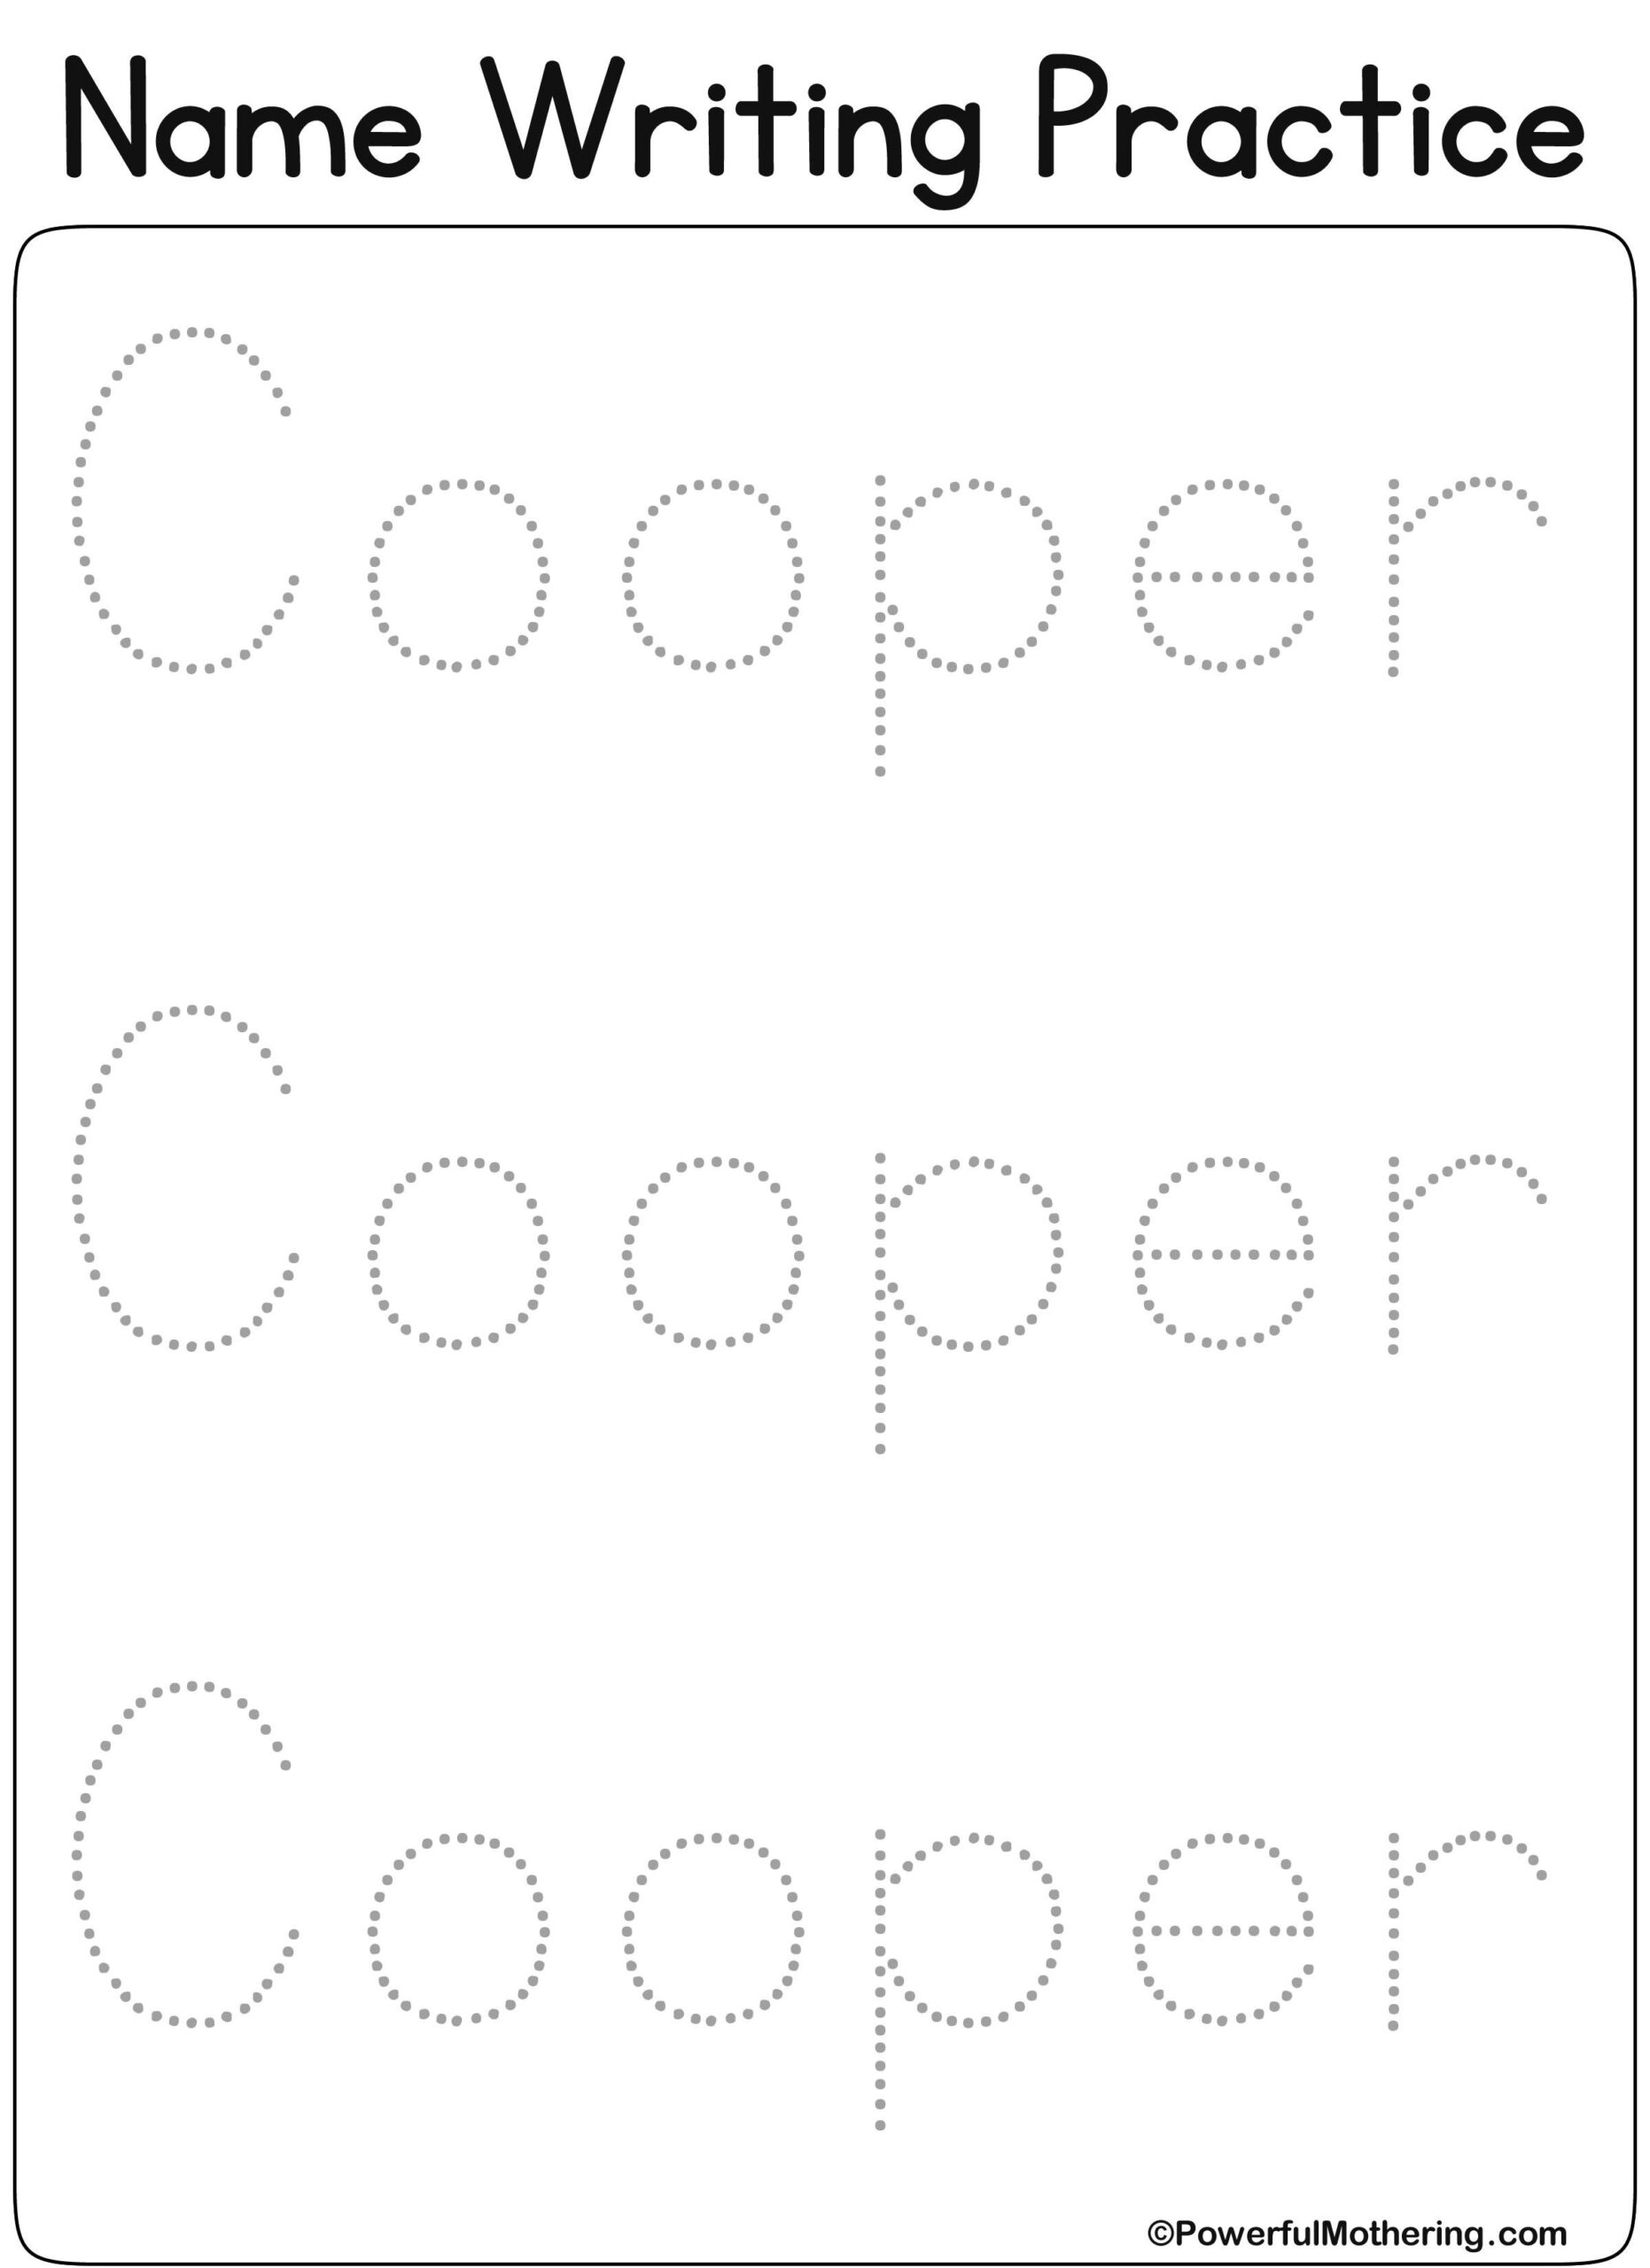 Www.createprintables Custom_Name_Get.php?text&#x3D intended for My Name Is Tracing Sheets